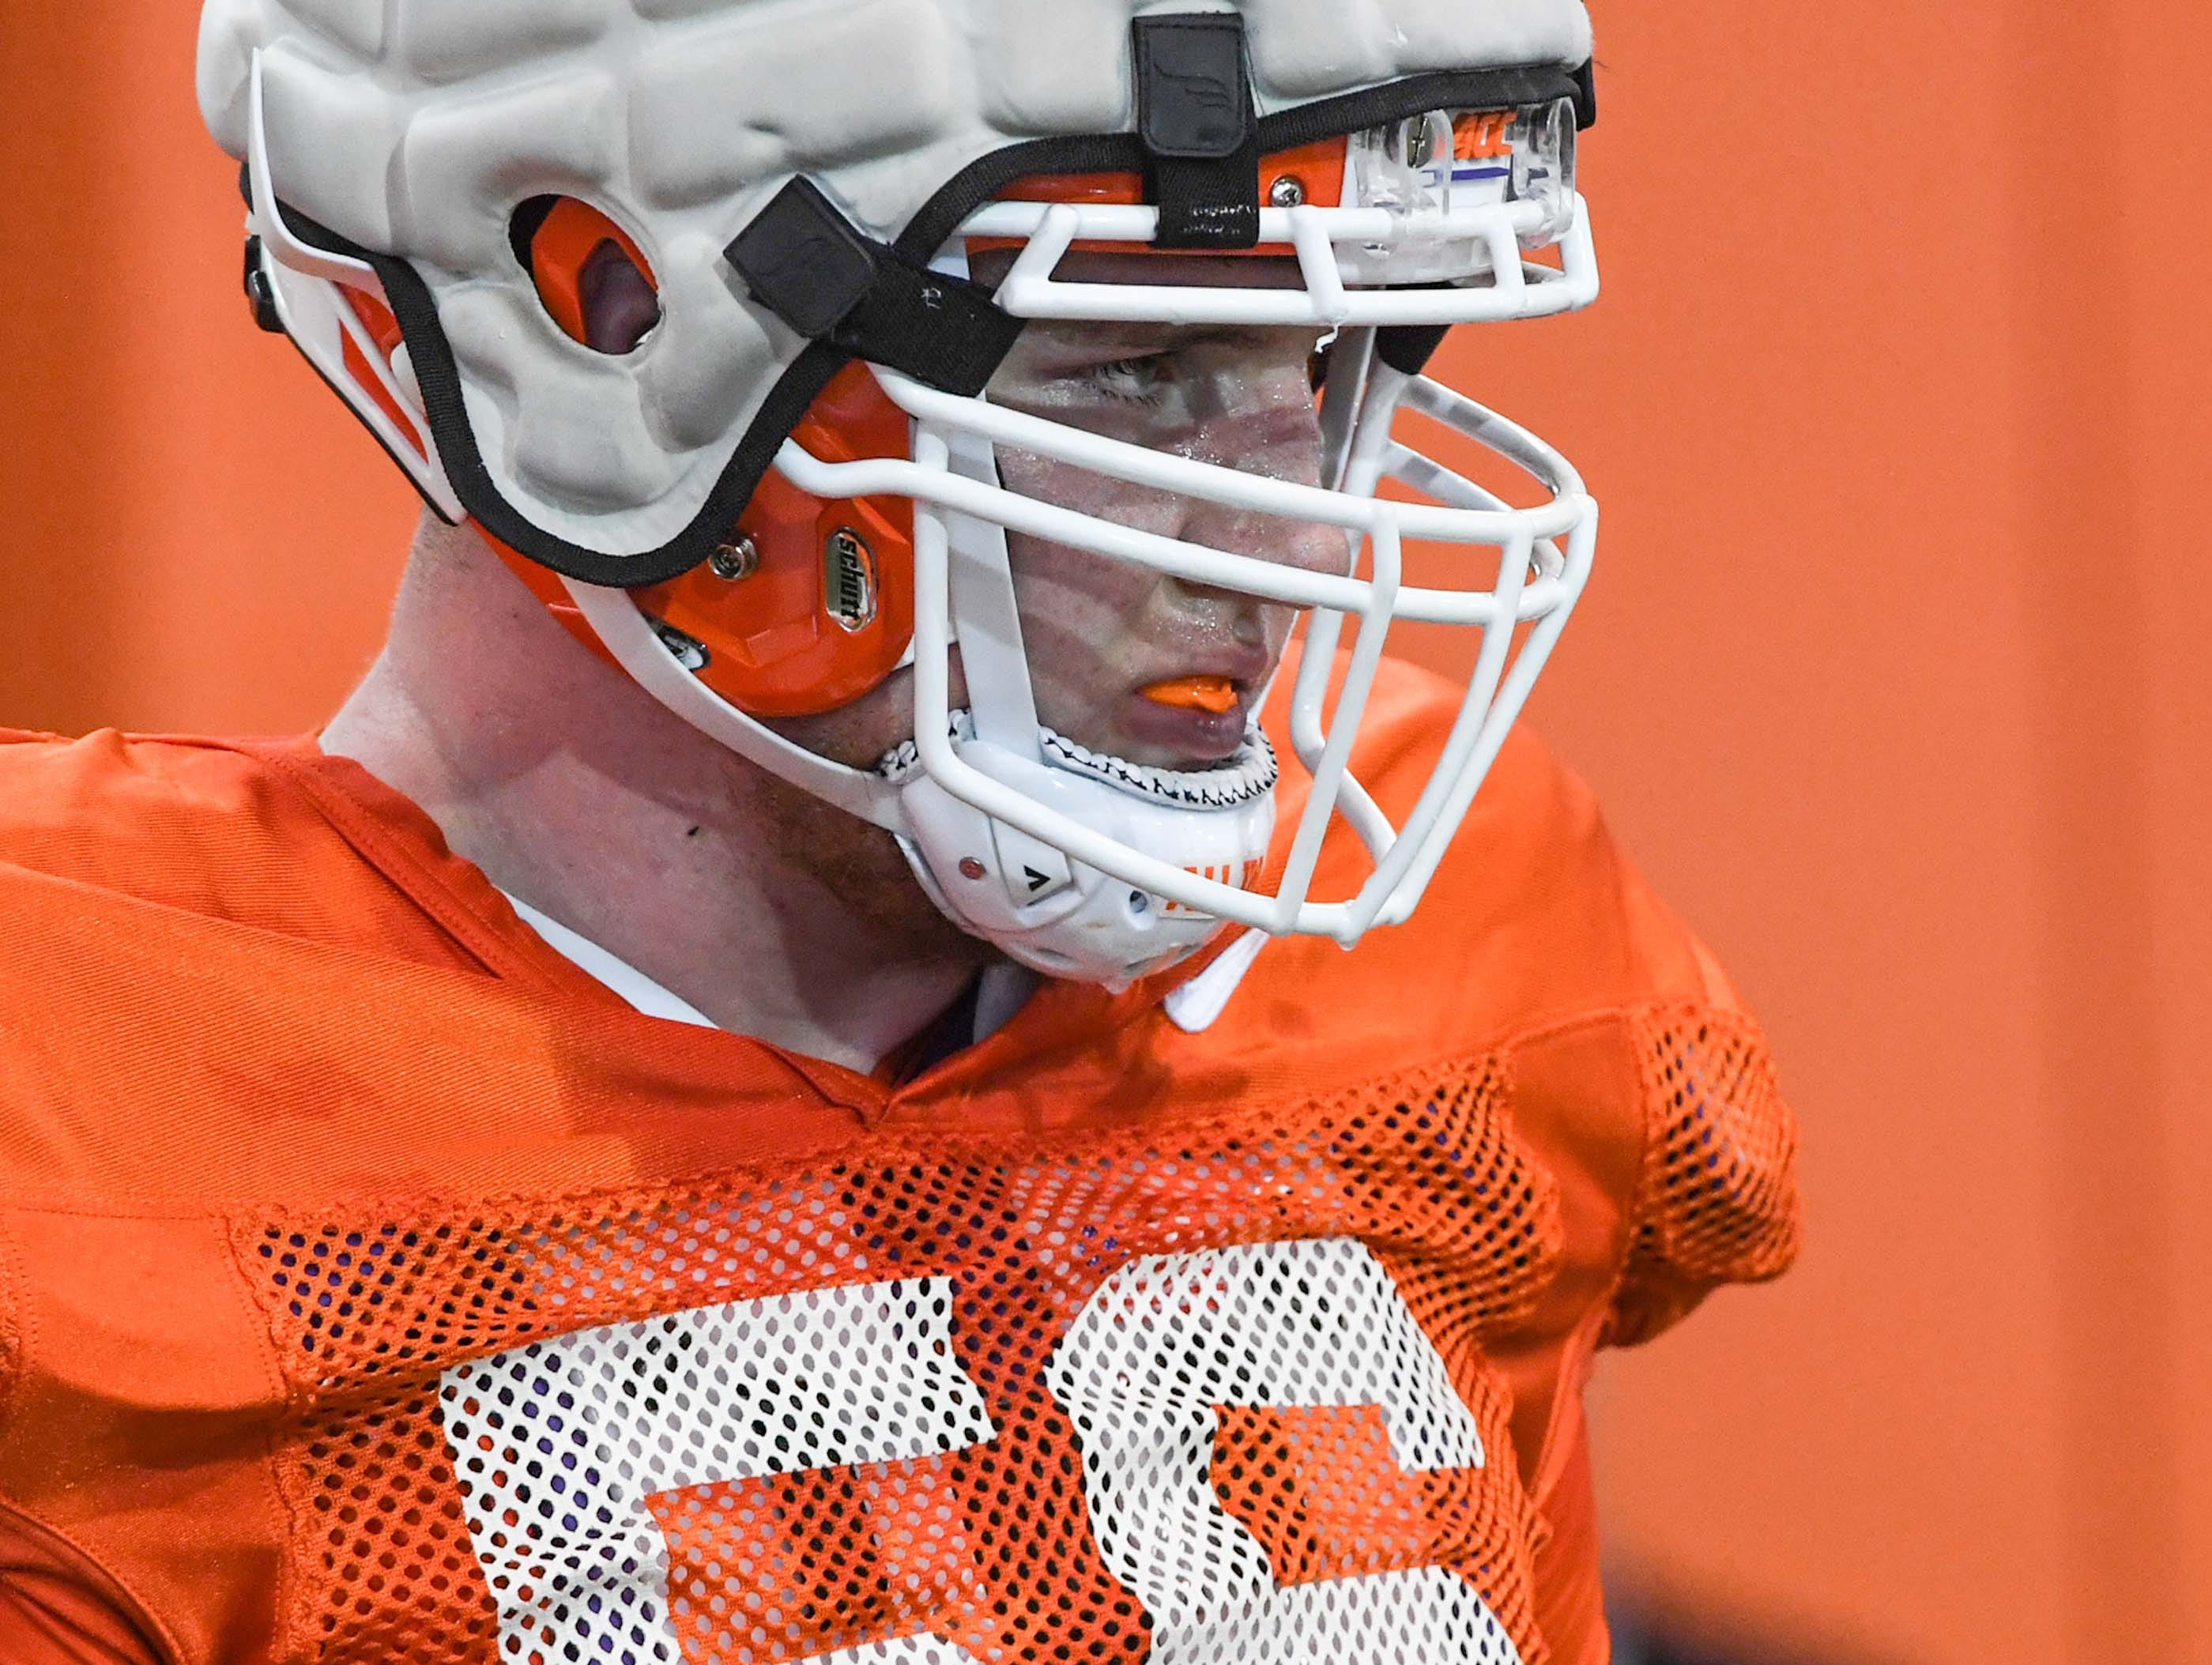 Clemson offensive lineman Will Putnam gets ready for the next drill during practice at the Poe Indoor Facility in Clemson Monday.